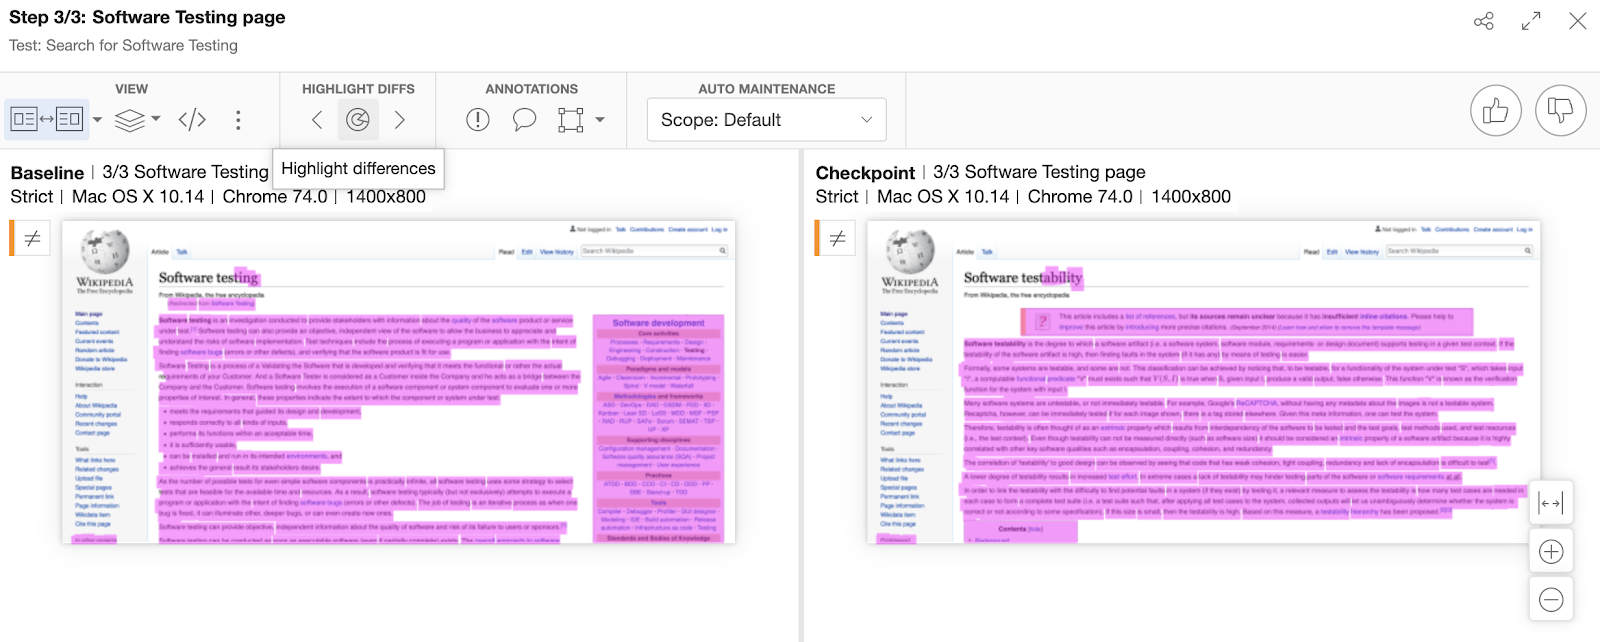 Visual differences between pages